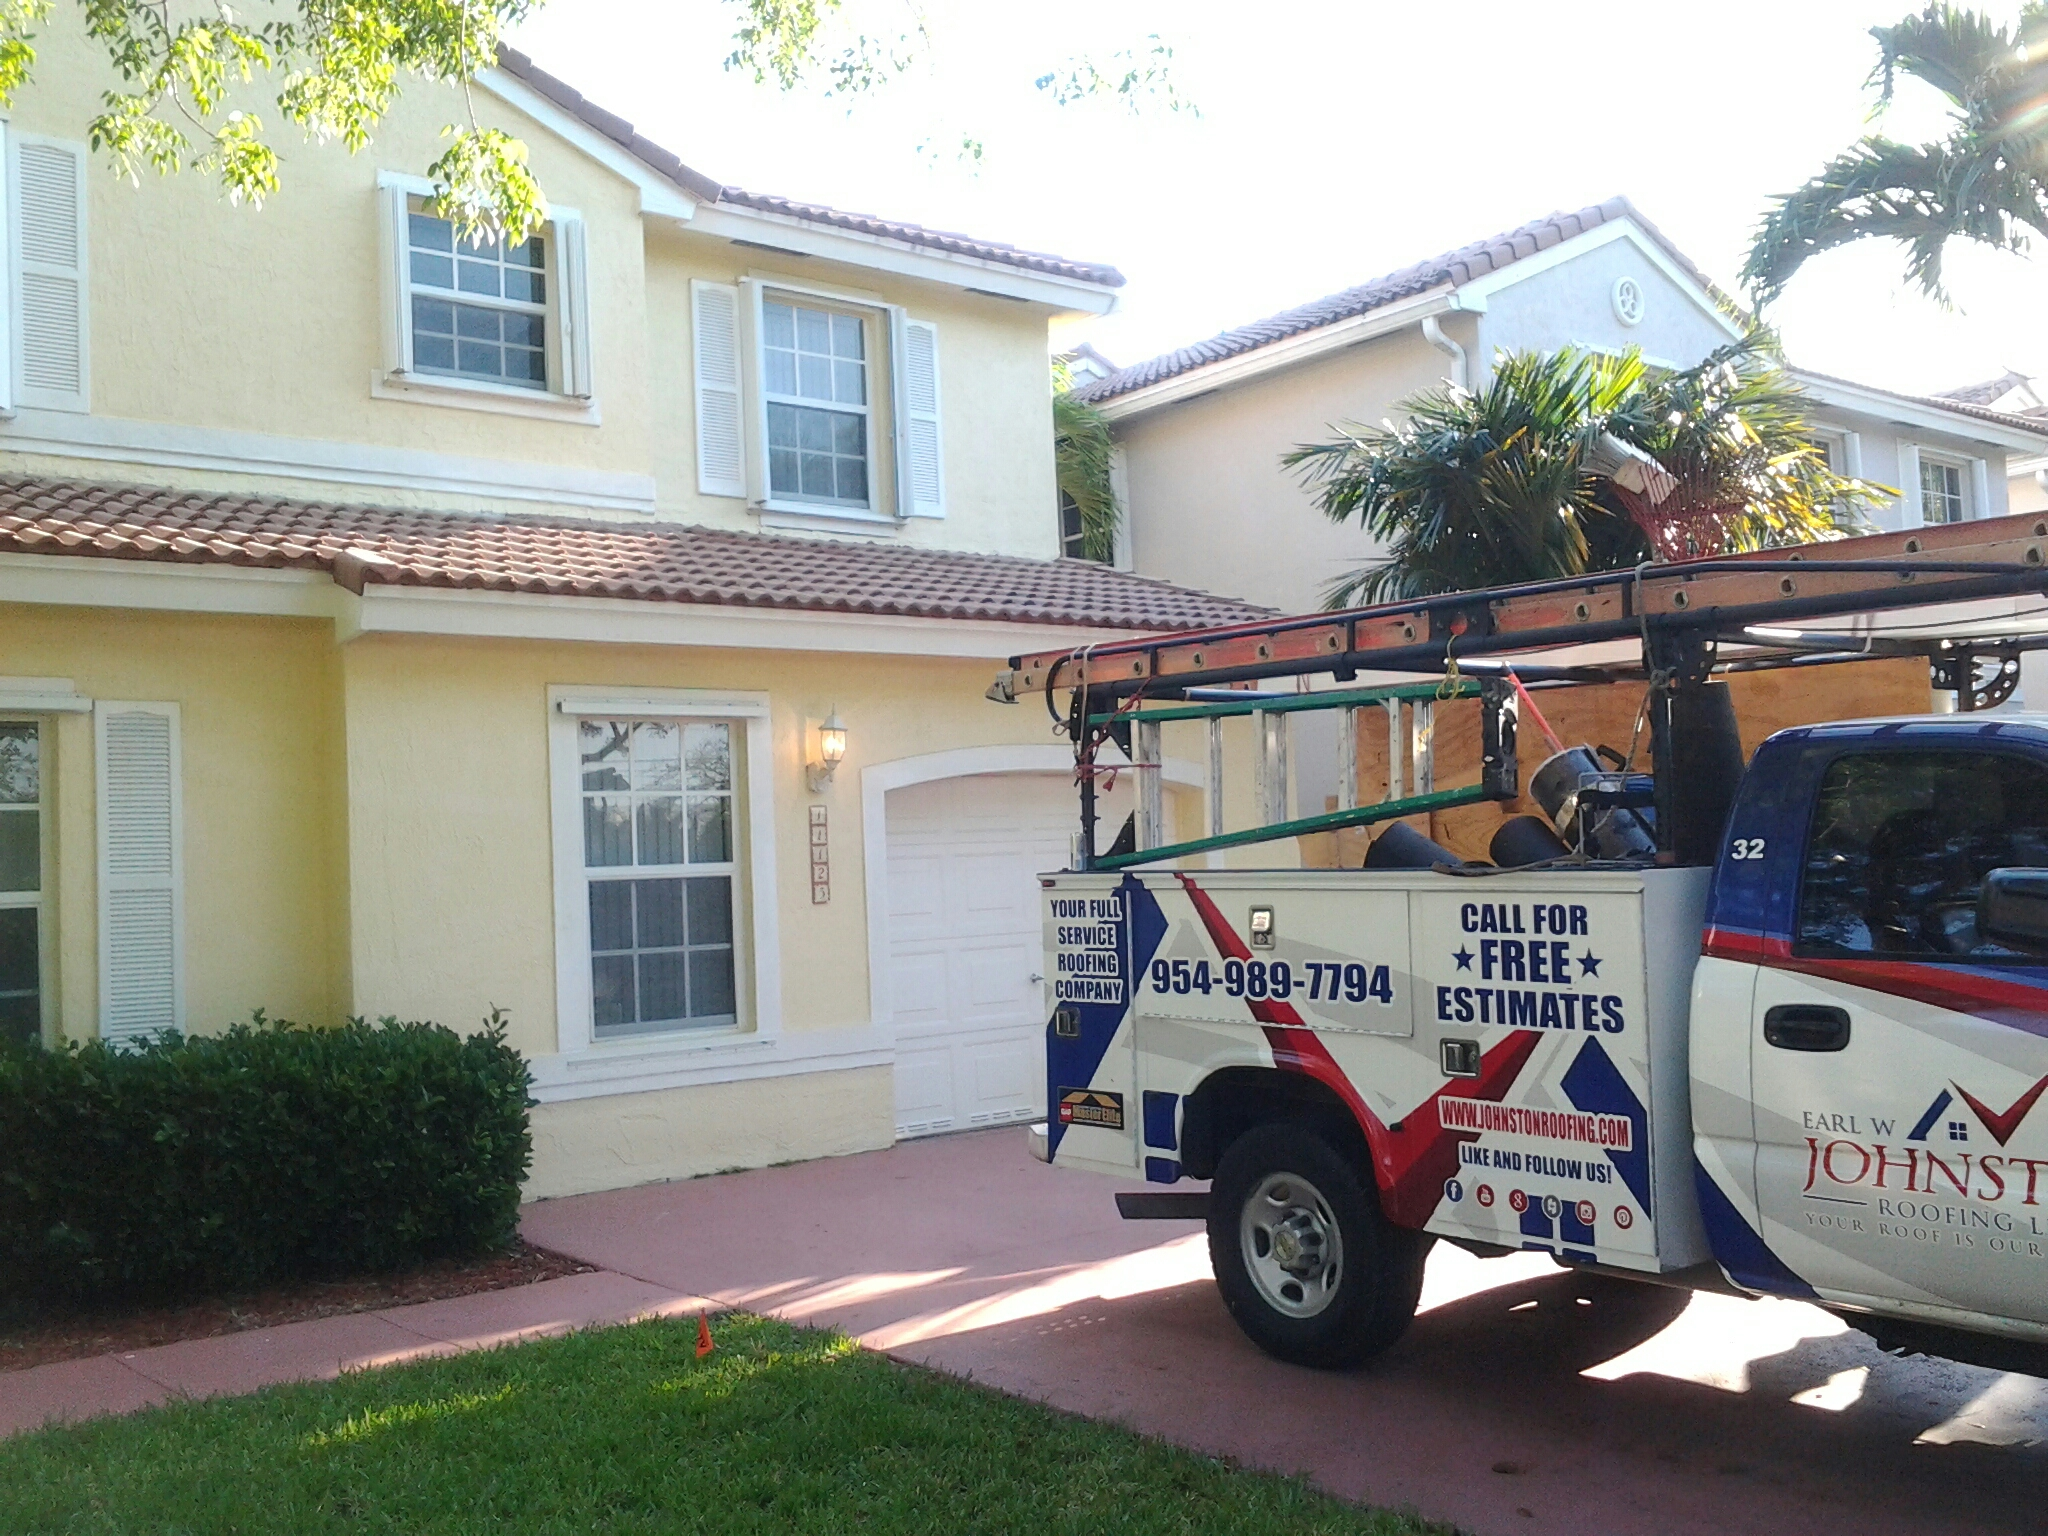 Coral Springs, FL - Tile roof repair in the city of coral springs fl this repair is being done by Earl w Johnston roofing company Jos? end Glen are you repair technicians